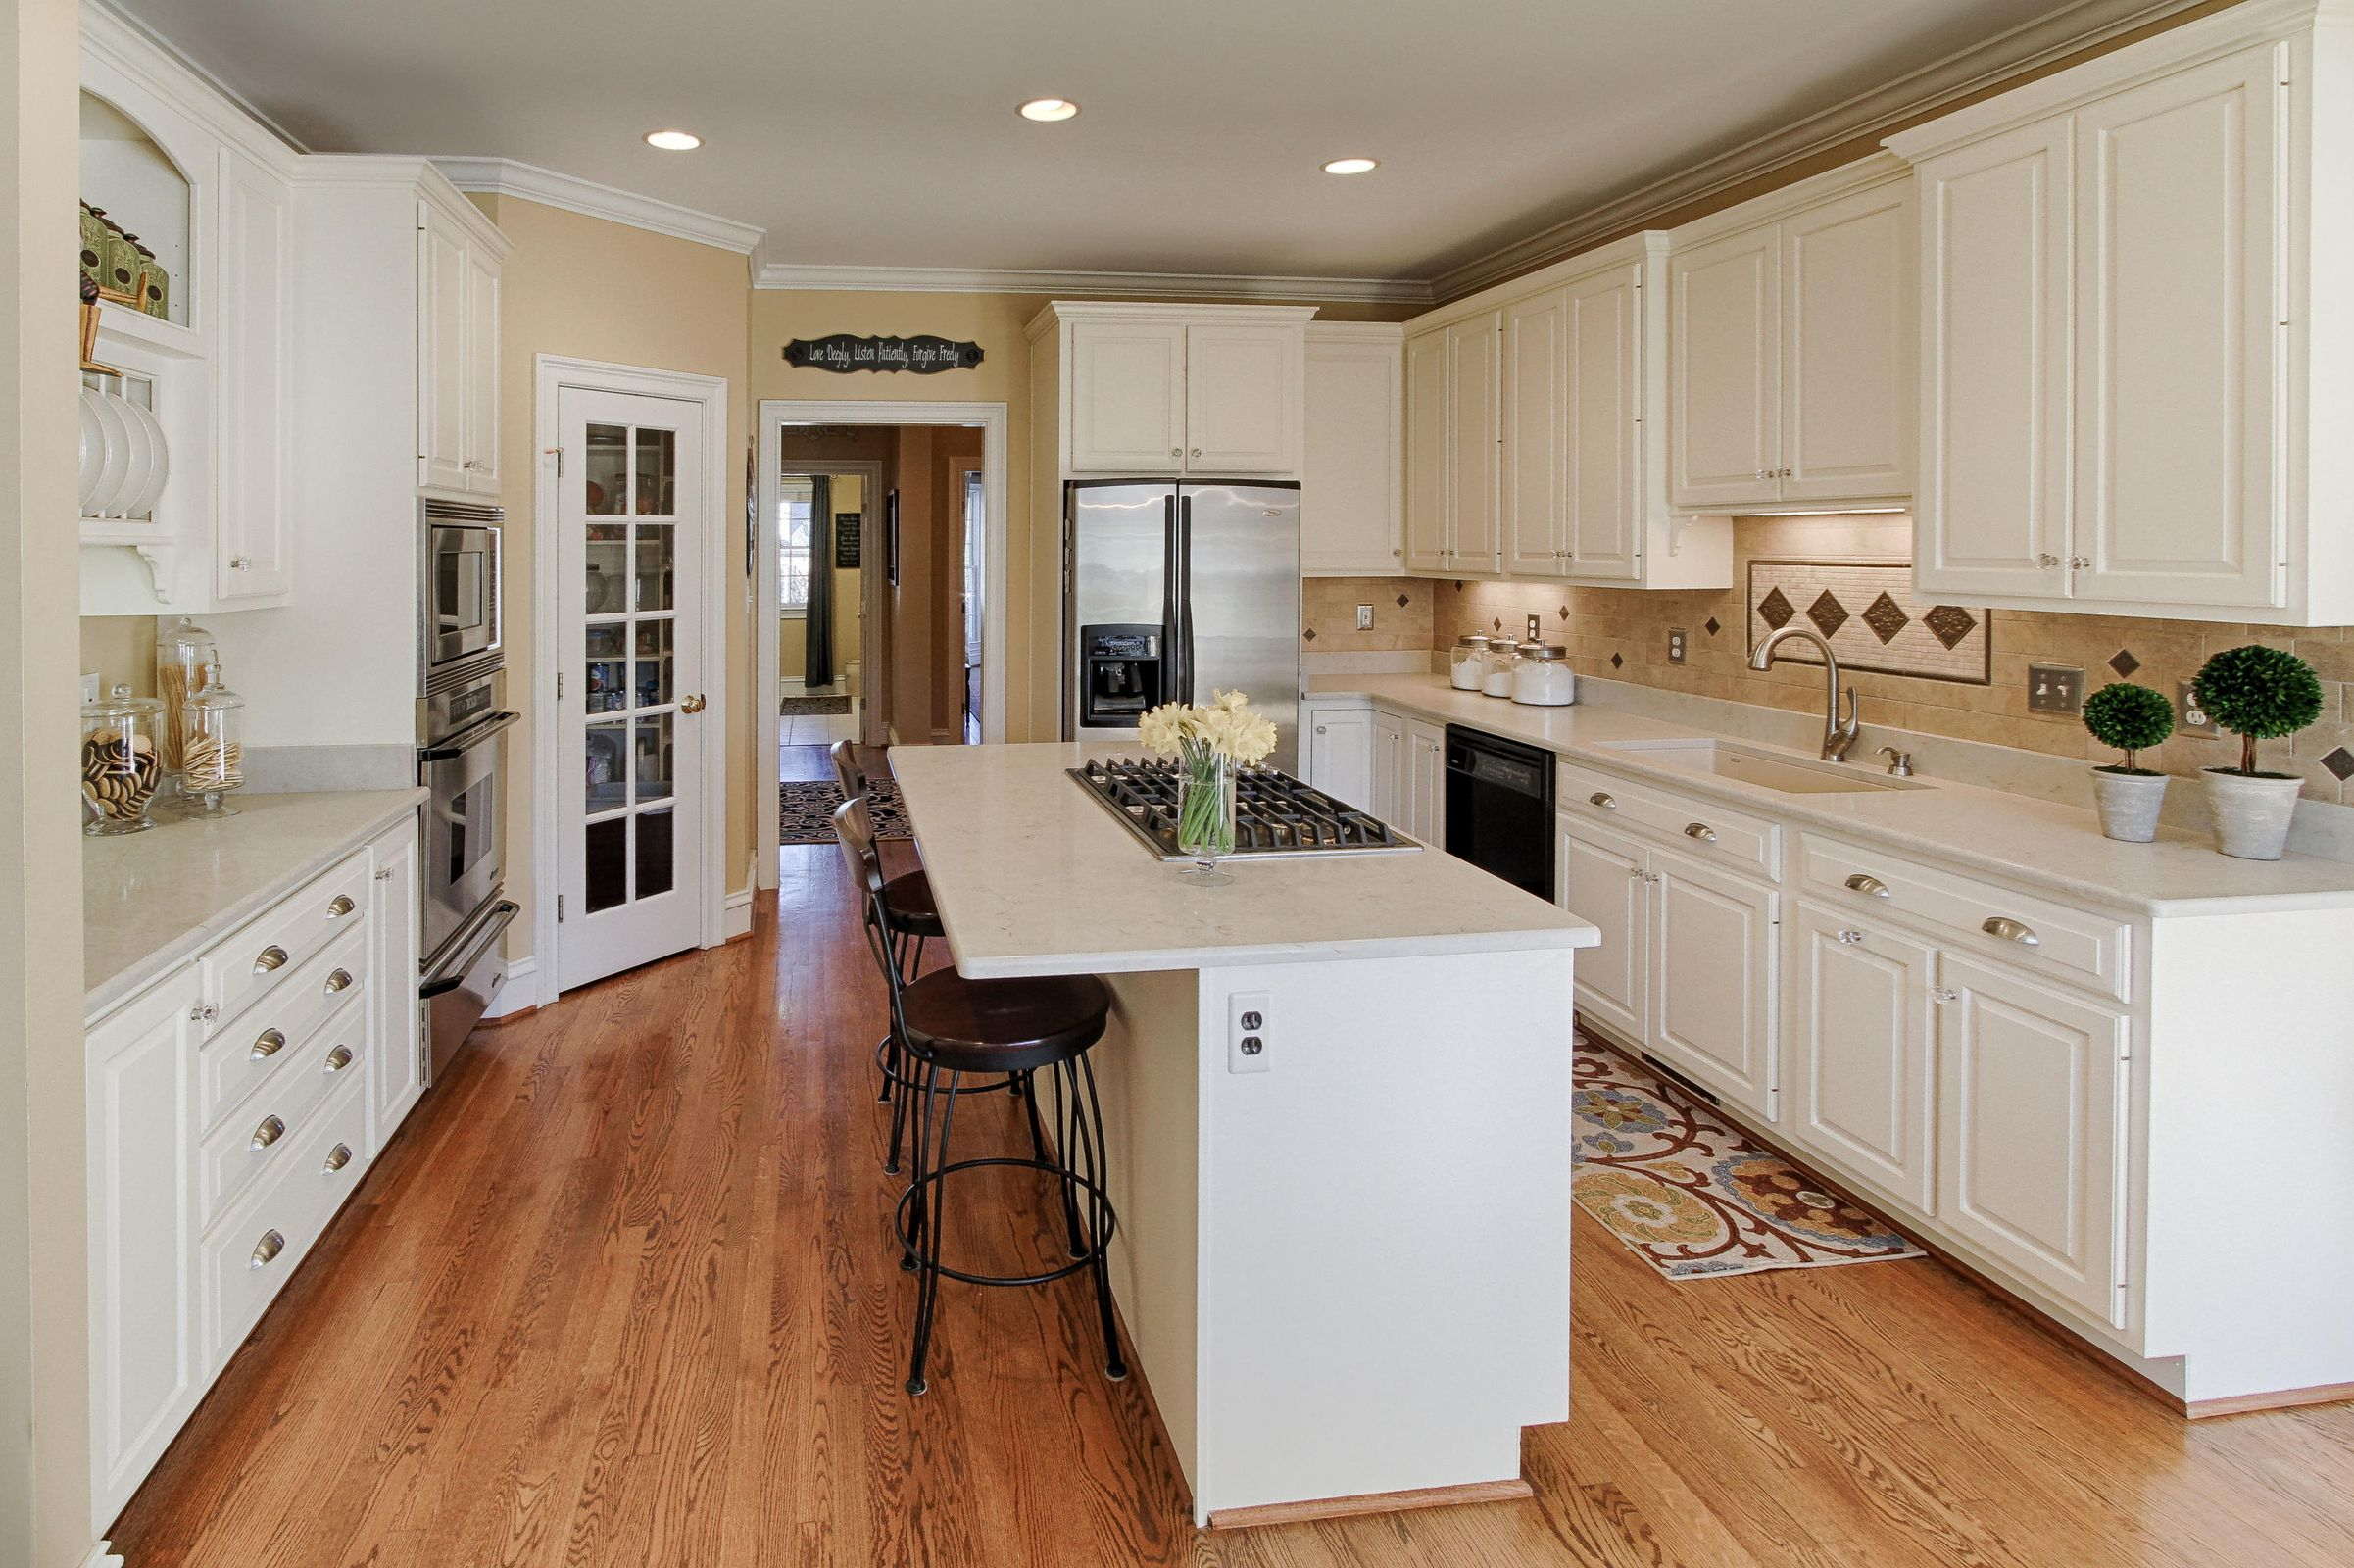 11 - Kitchen has Island with bar seating